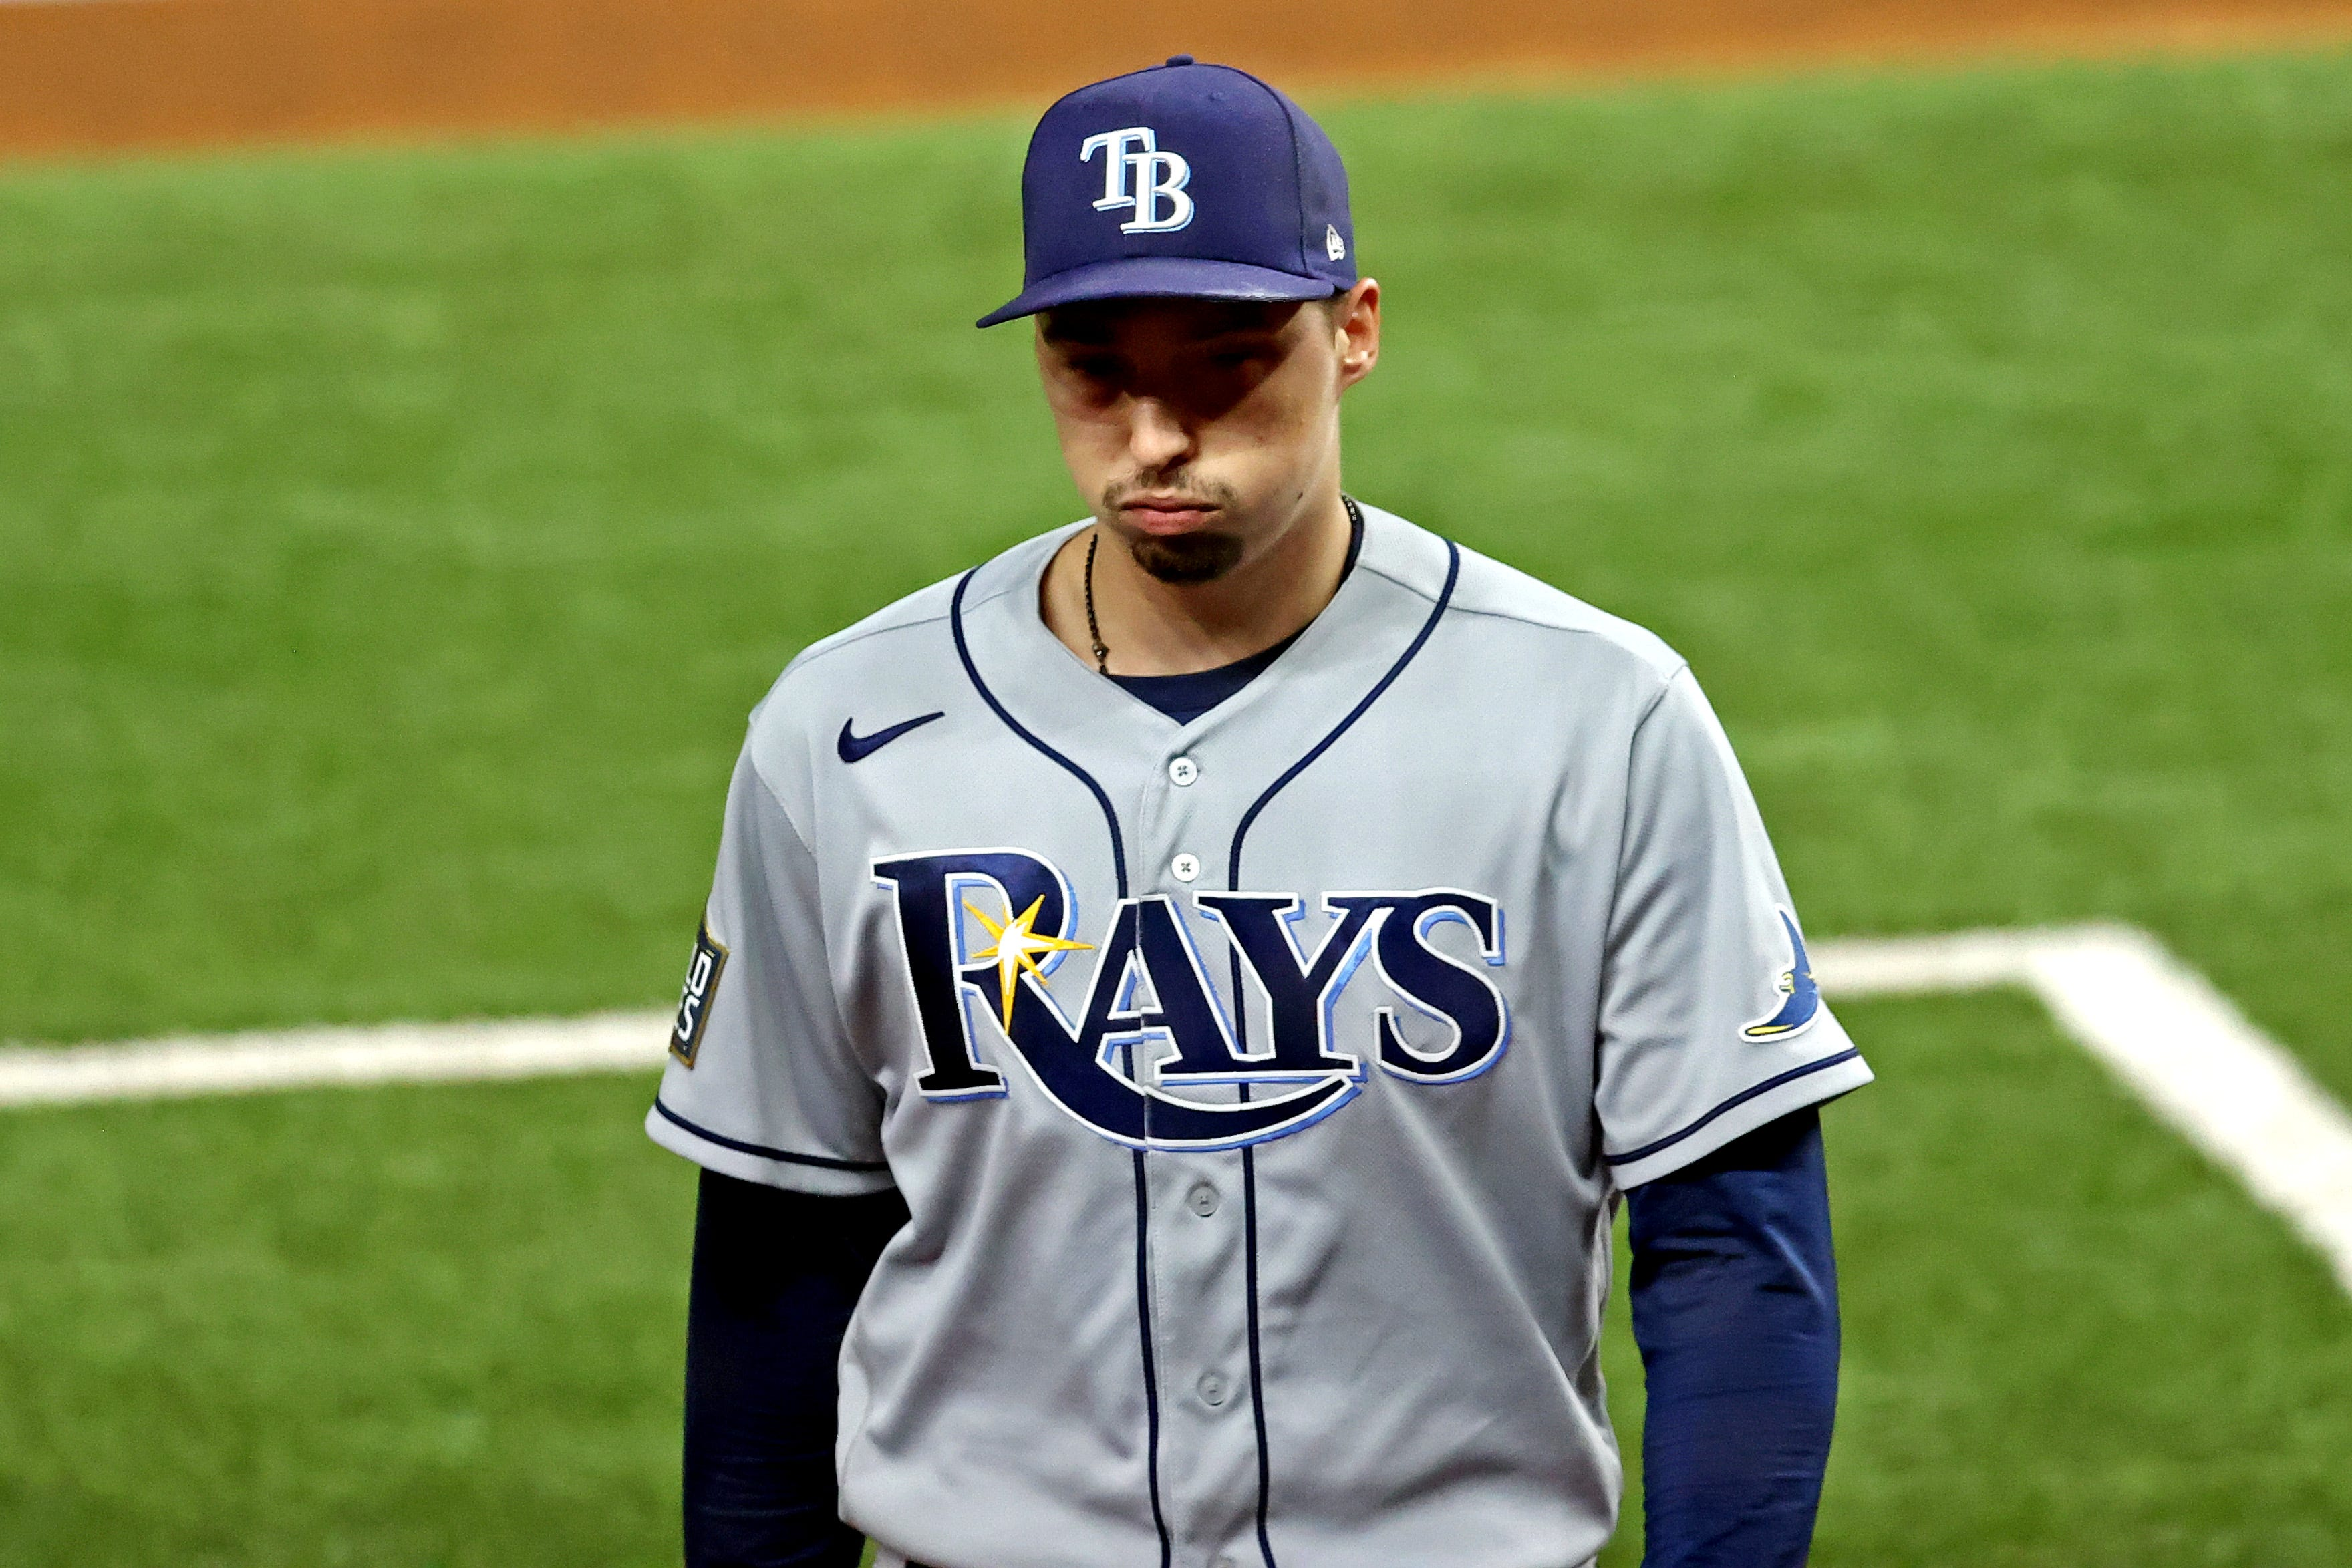 'Gut-wrenching': Rays' World Series run over after Kevin Cash yanks Blake Snell early